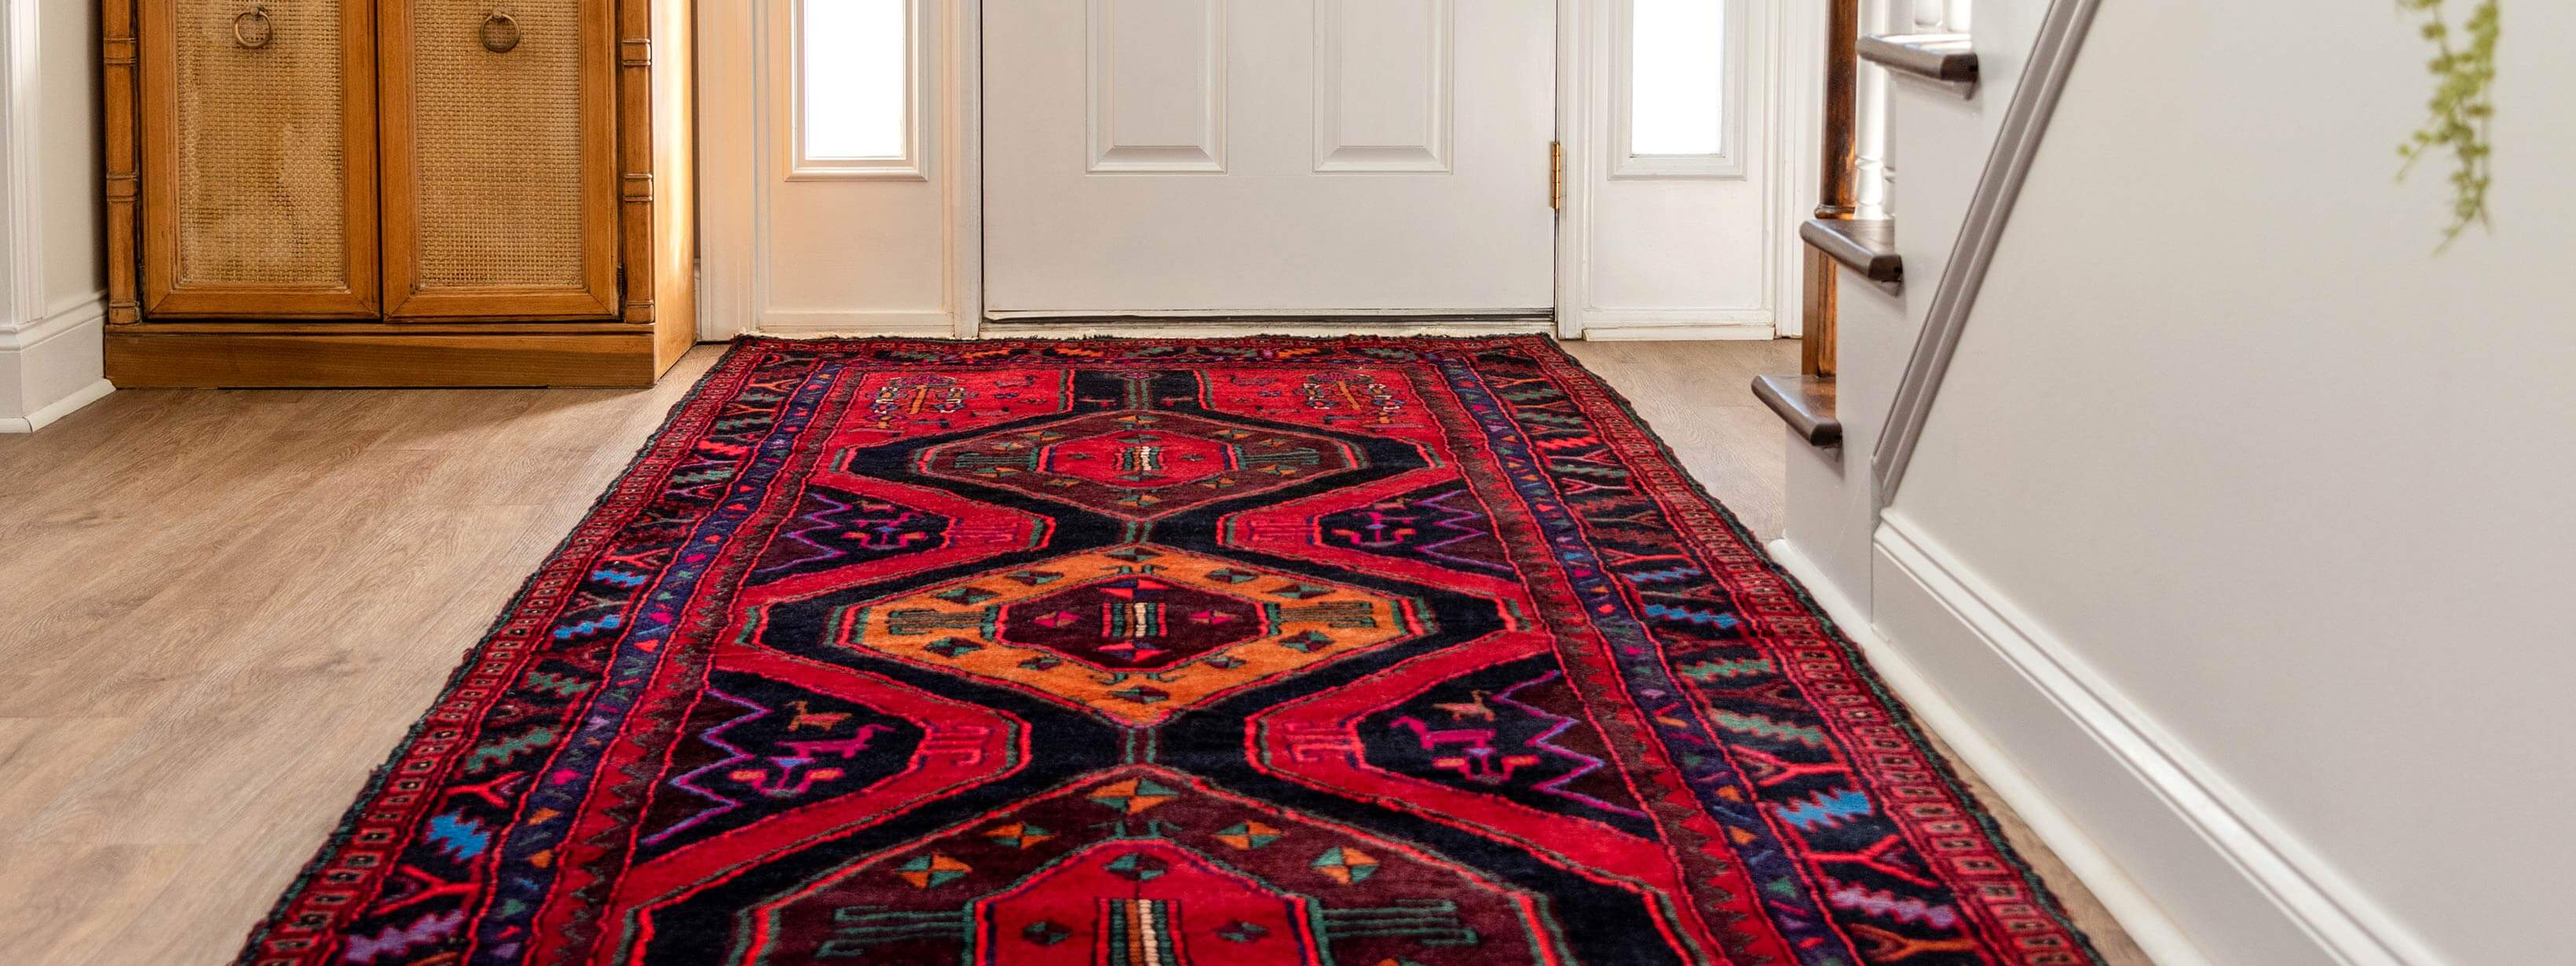 Meshkin Rug Photo